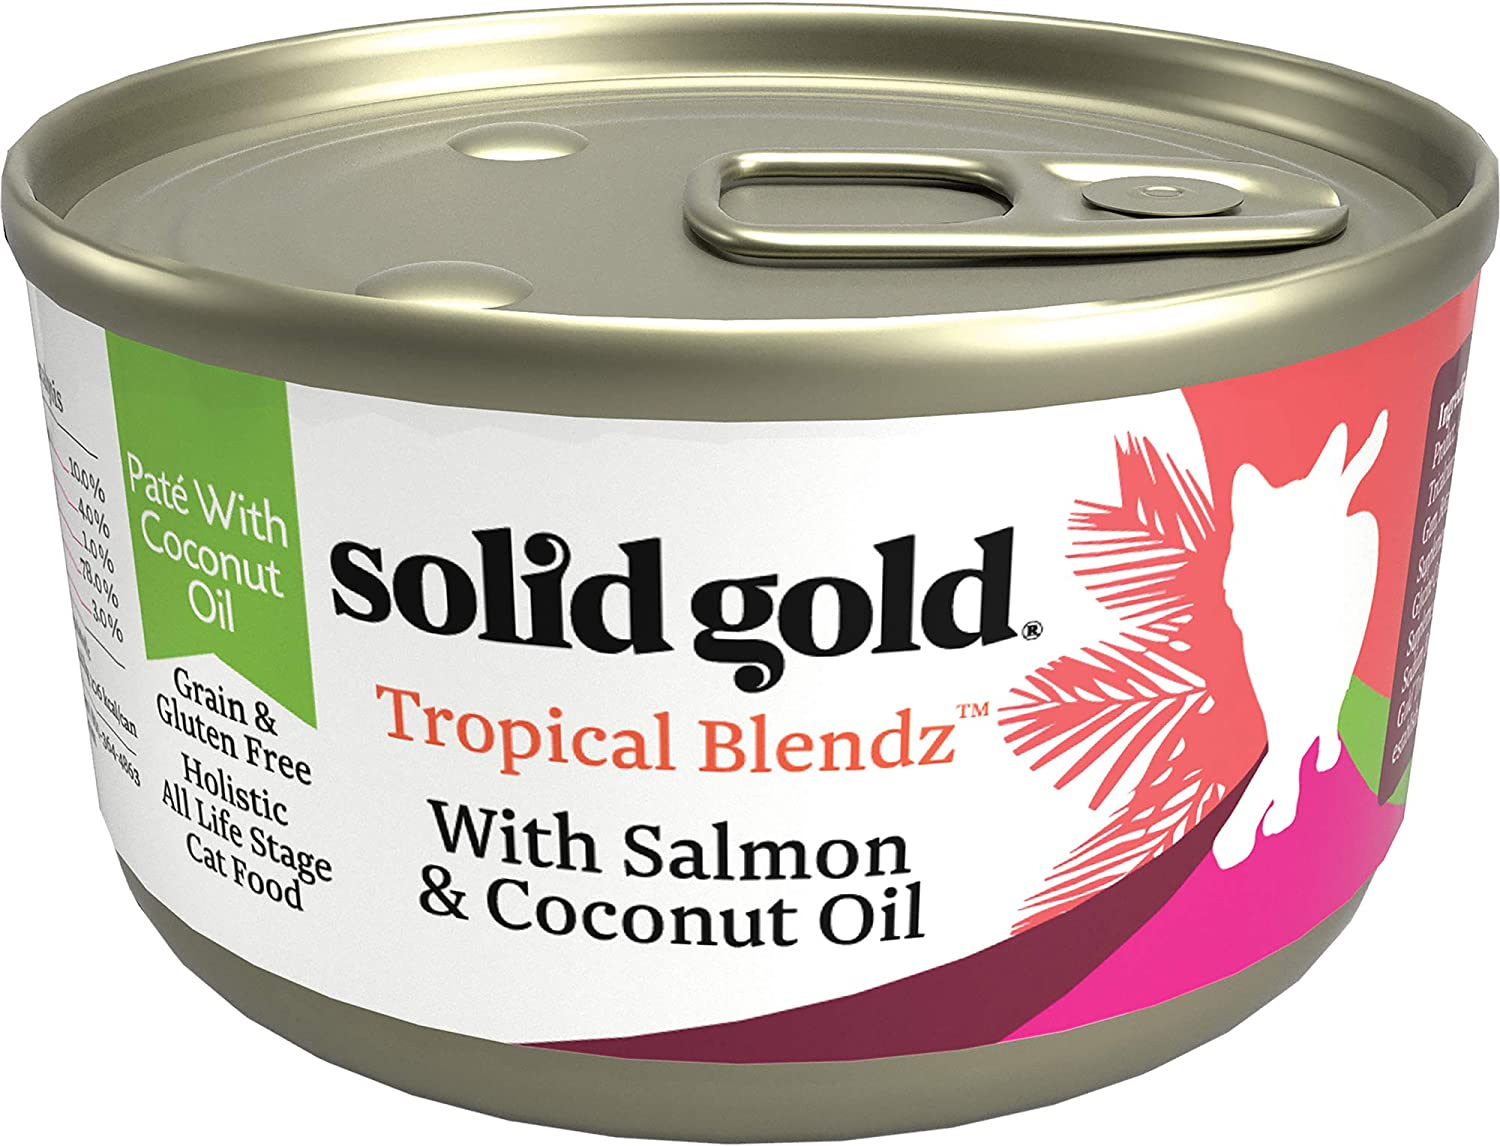 Solid Gold Tropical Blendz Pate with Coconut Oil - Grain-Free Holistic Wet Cat Food with Real Meat